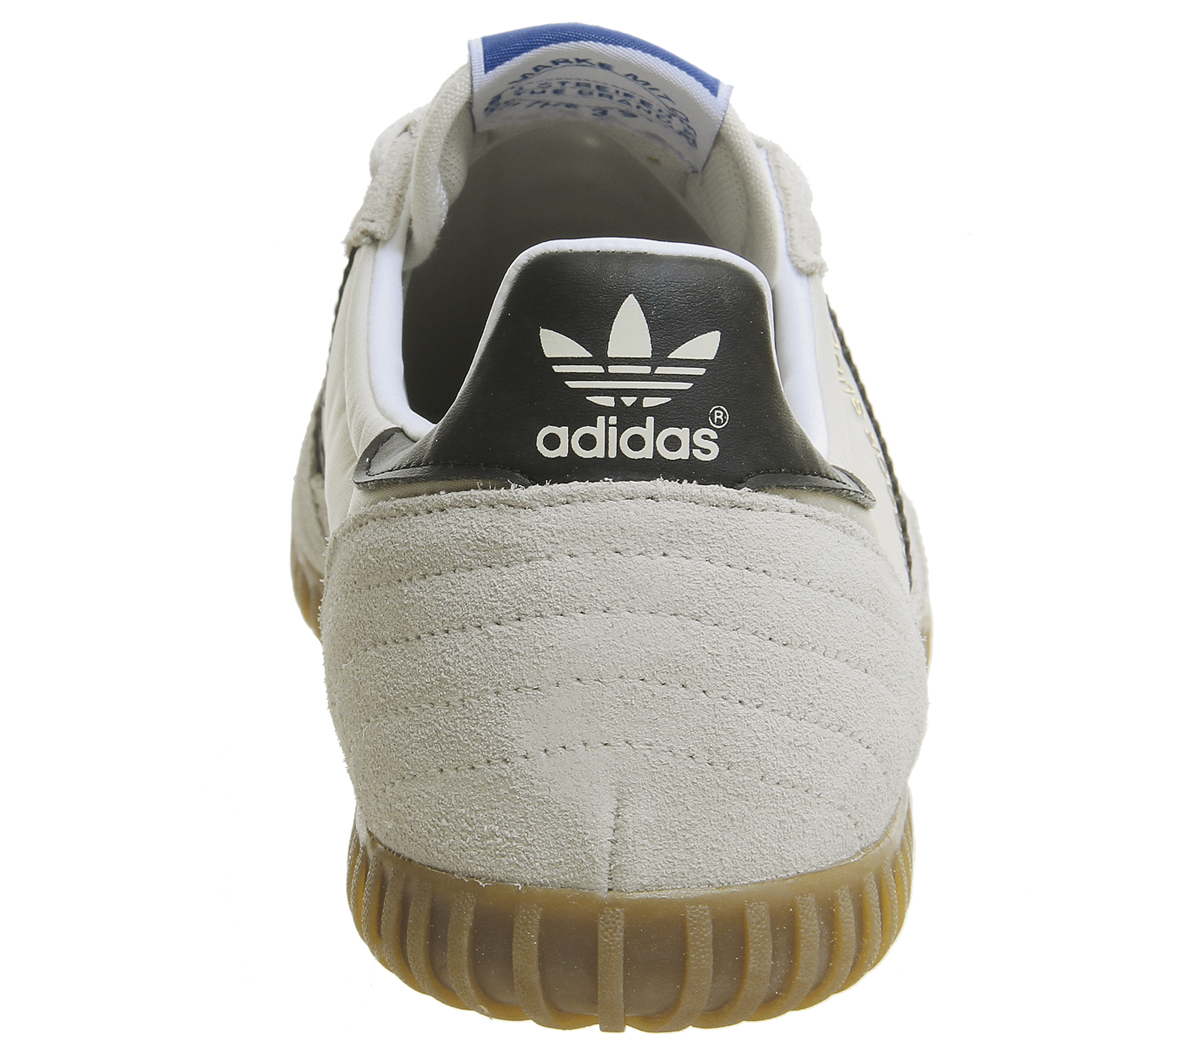 Adidas Indoor CORE Super Trainers CLEAR BROWN CORE Indoor BLACK GUM Trainers Schuhes 090a48